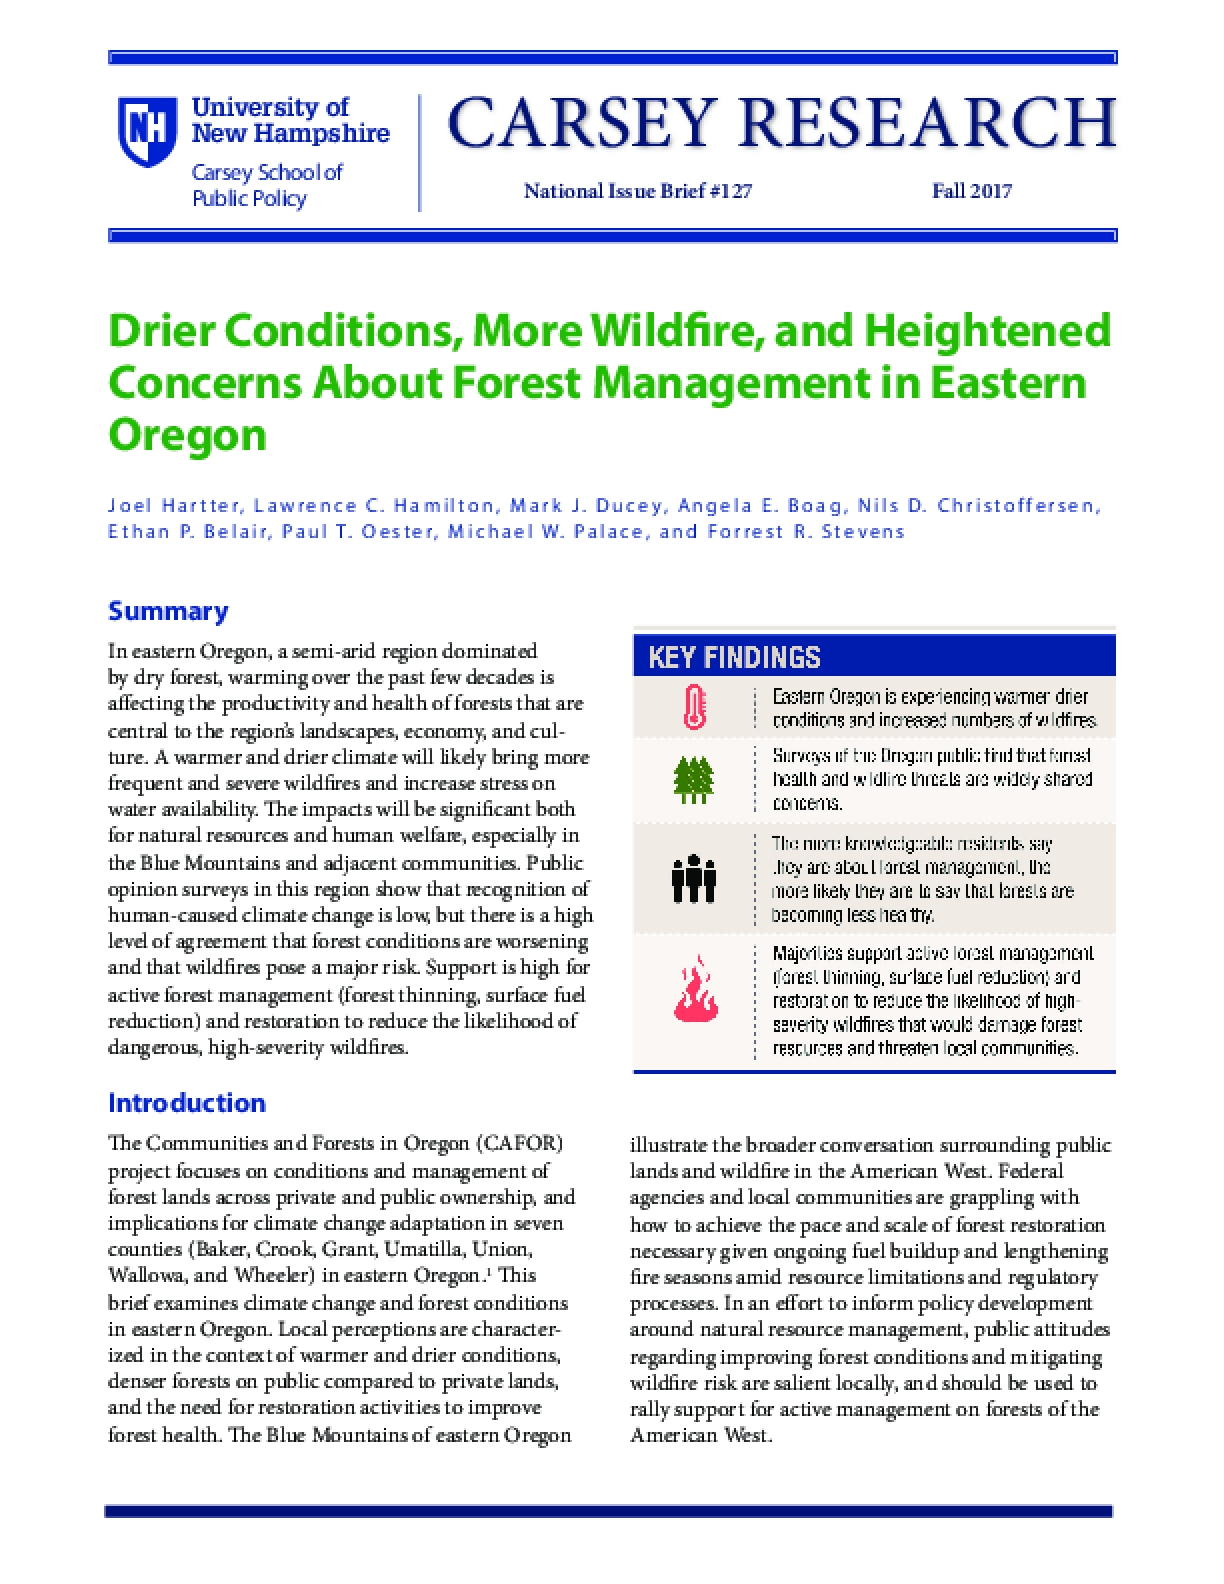 Drier Conditions, More Wildfire, and Heightened Concerns About Forest Management in Eastern Oregon